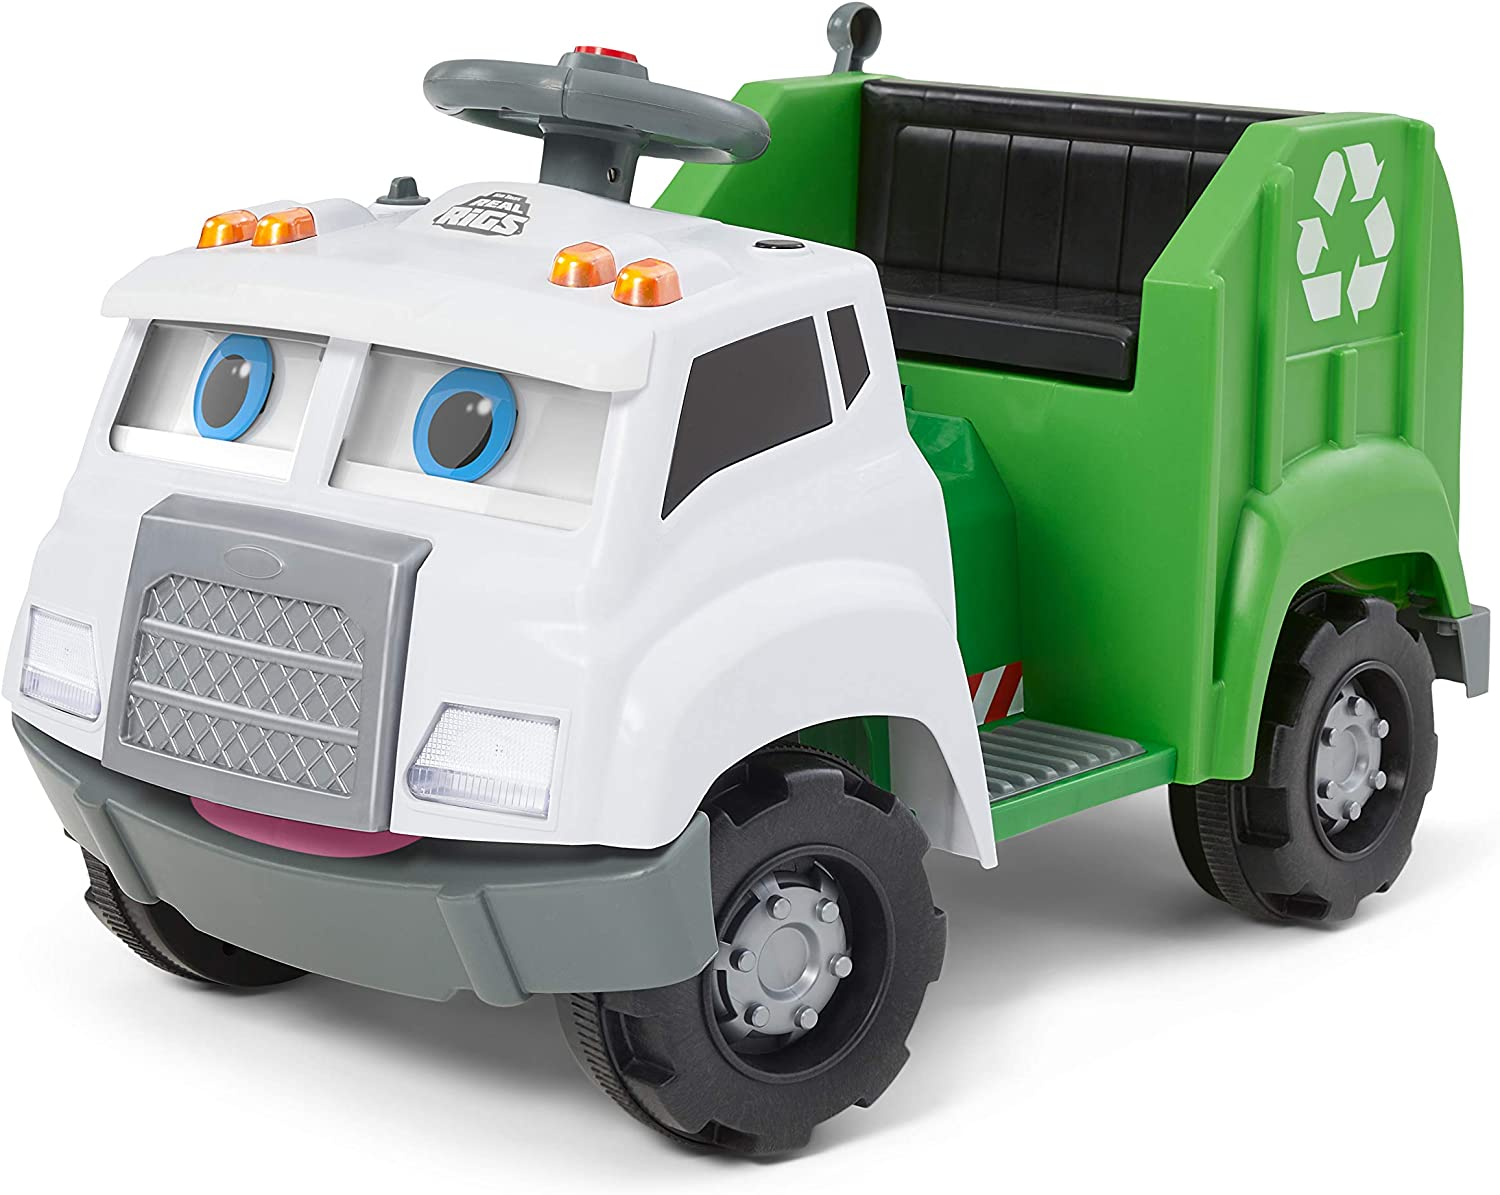 Kid Trax Real Rigs Toddler Recycling Truck Interactive Ride On Toy, Kids Ages 1.5-4 Years, 6 Volt Battery and Charger, Sound Effects, 9 Recycling Accessories Included (KT1535TG) , Green